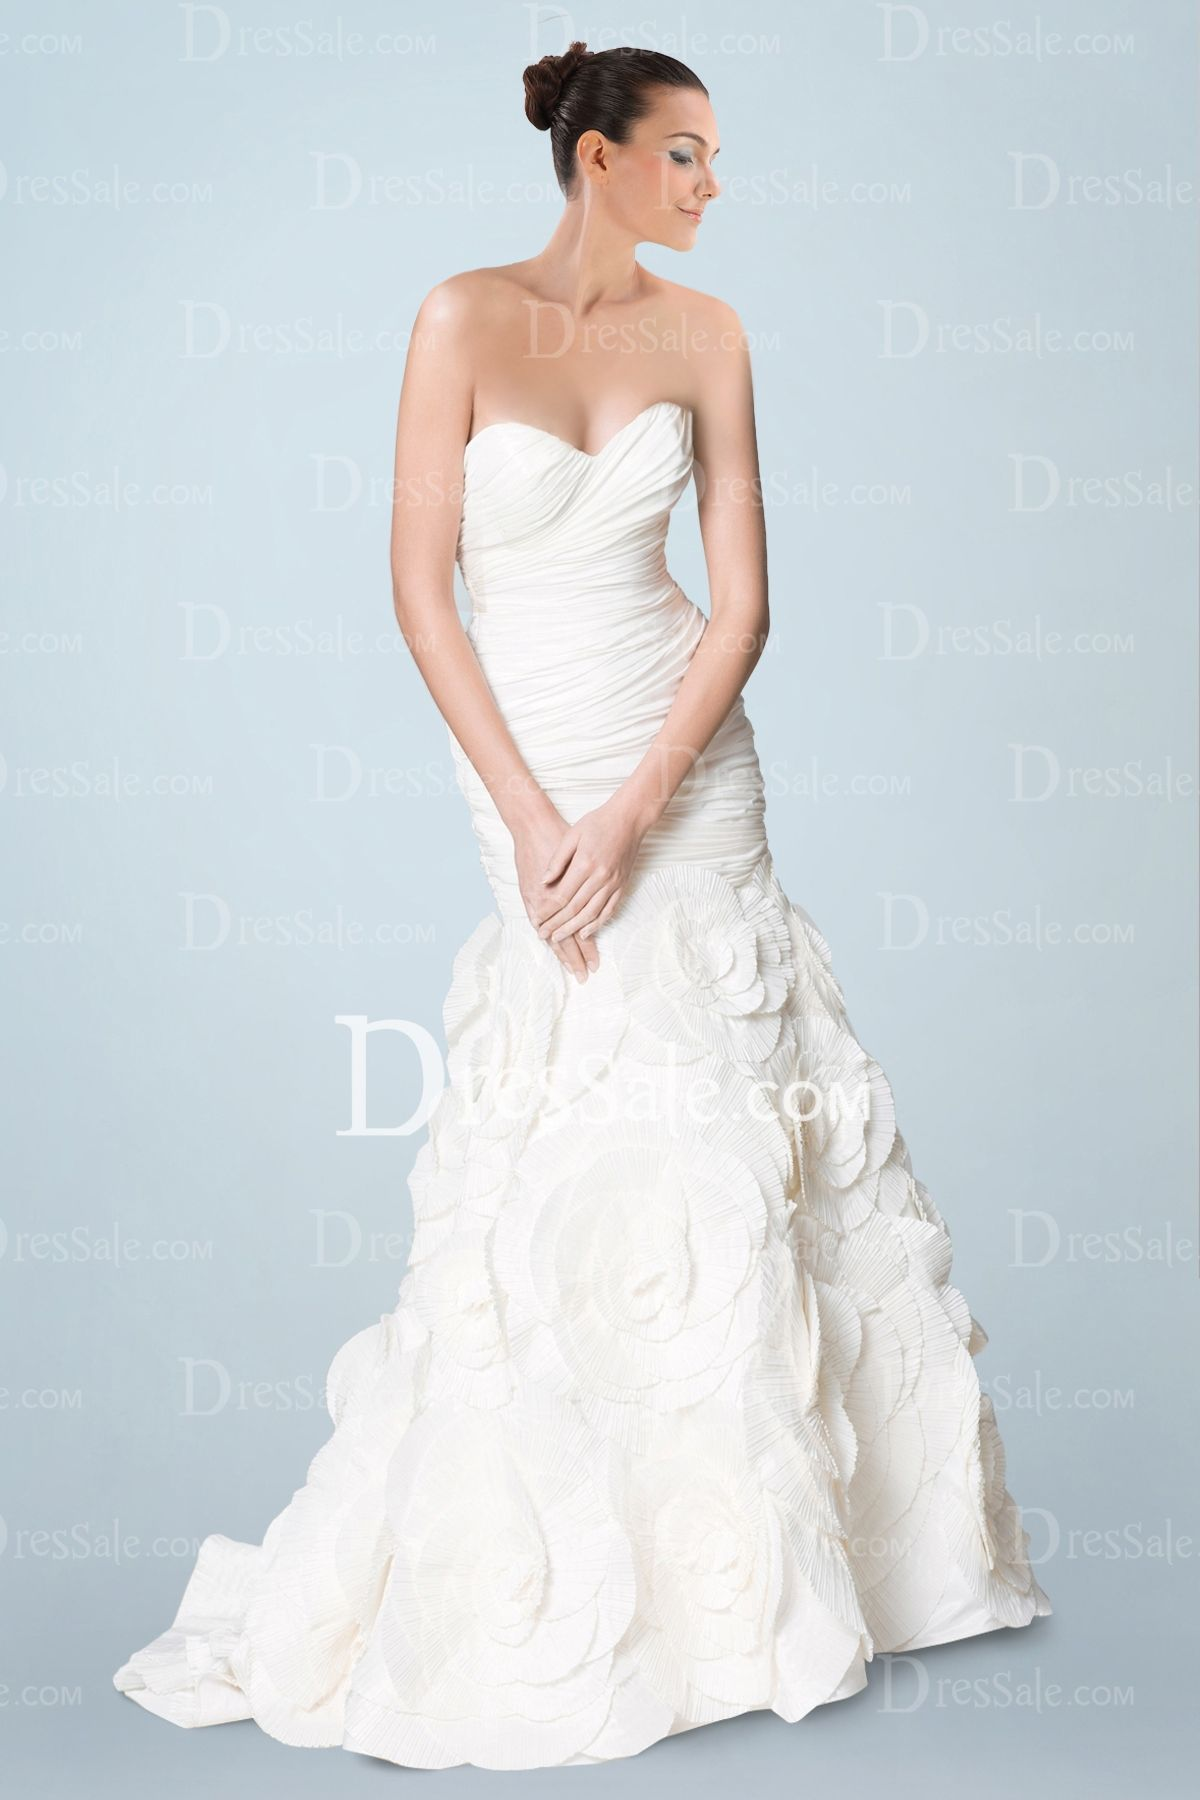 Stunning Taffeta Trumpet Bridal Dress with Ruched Bodice and Pleated Floral Detail